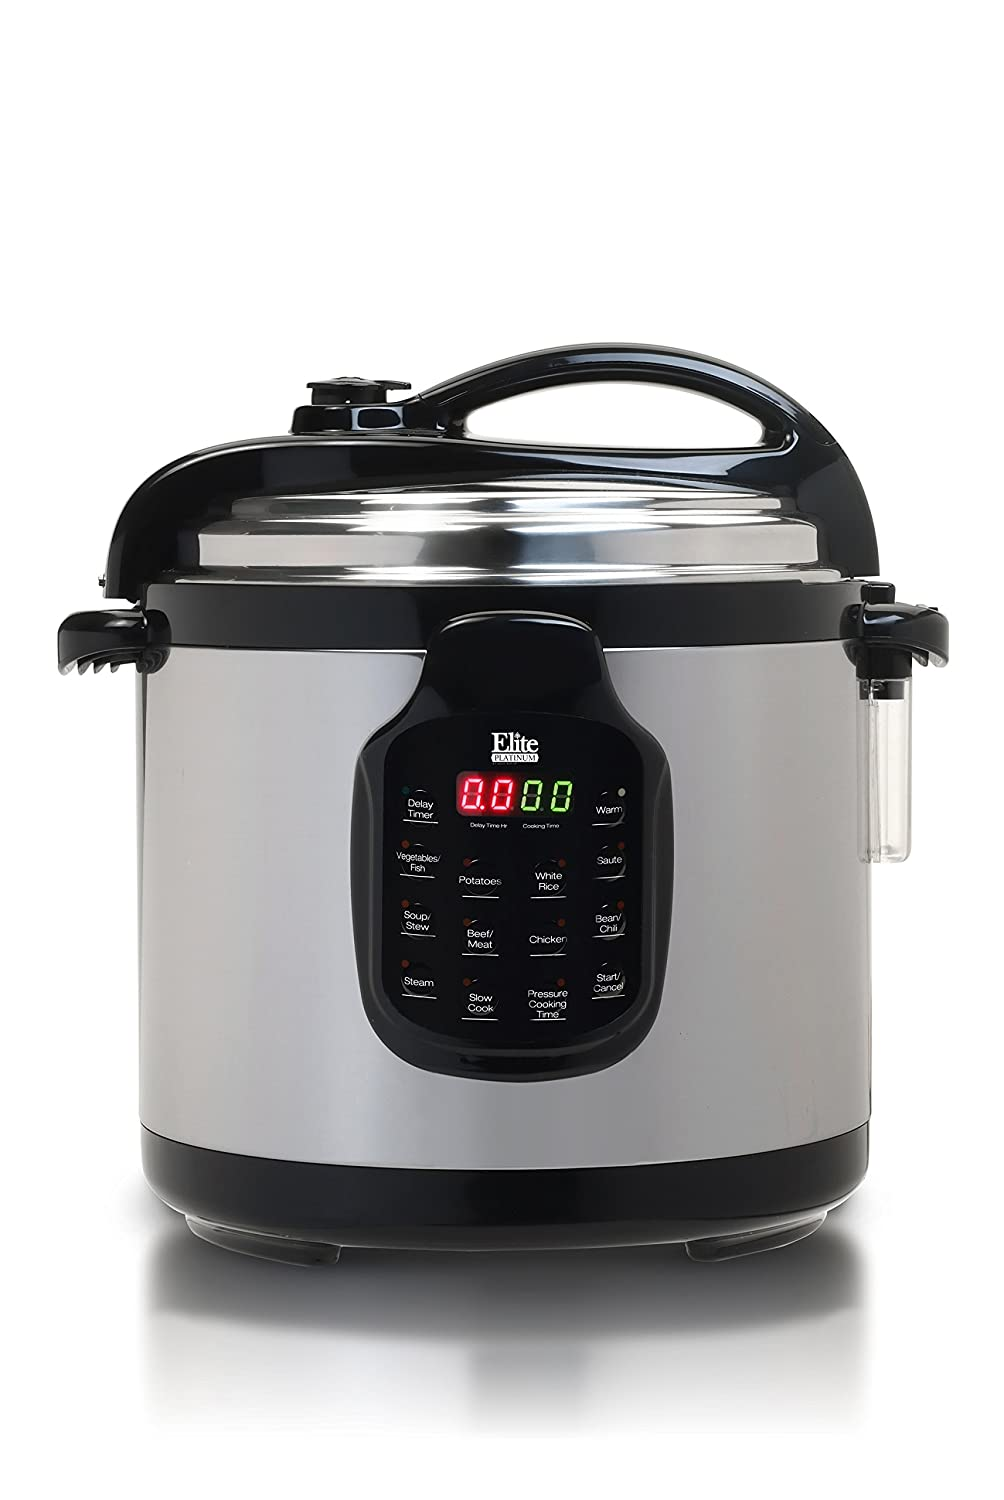 Elite Platinum EPC-678SS MaxiMatic 11-Function Digital Pressure Cooker with Stainless Steel Pot, 6-Quart